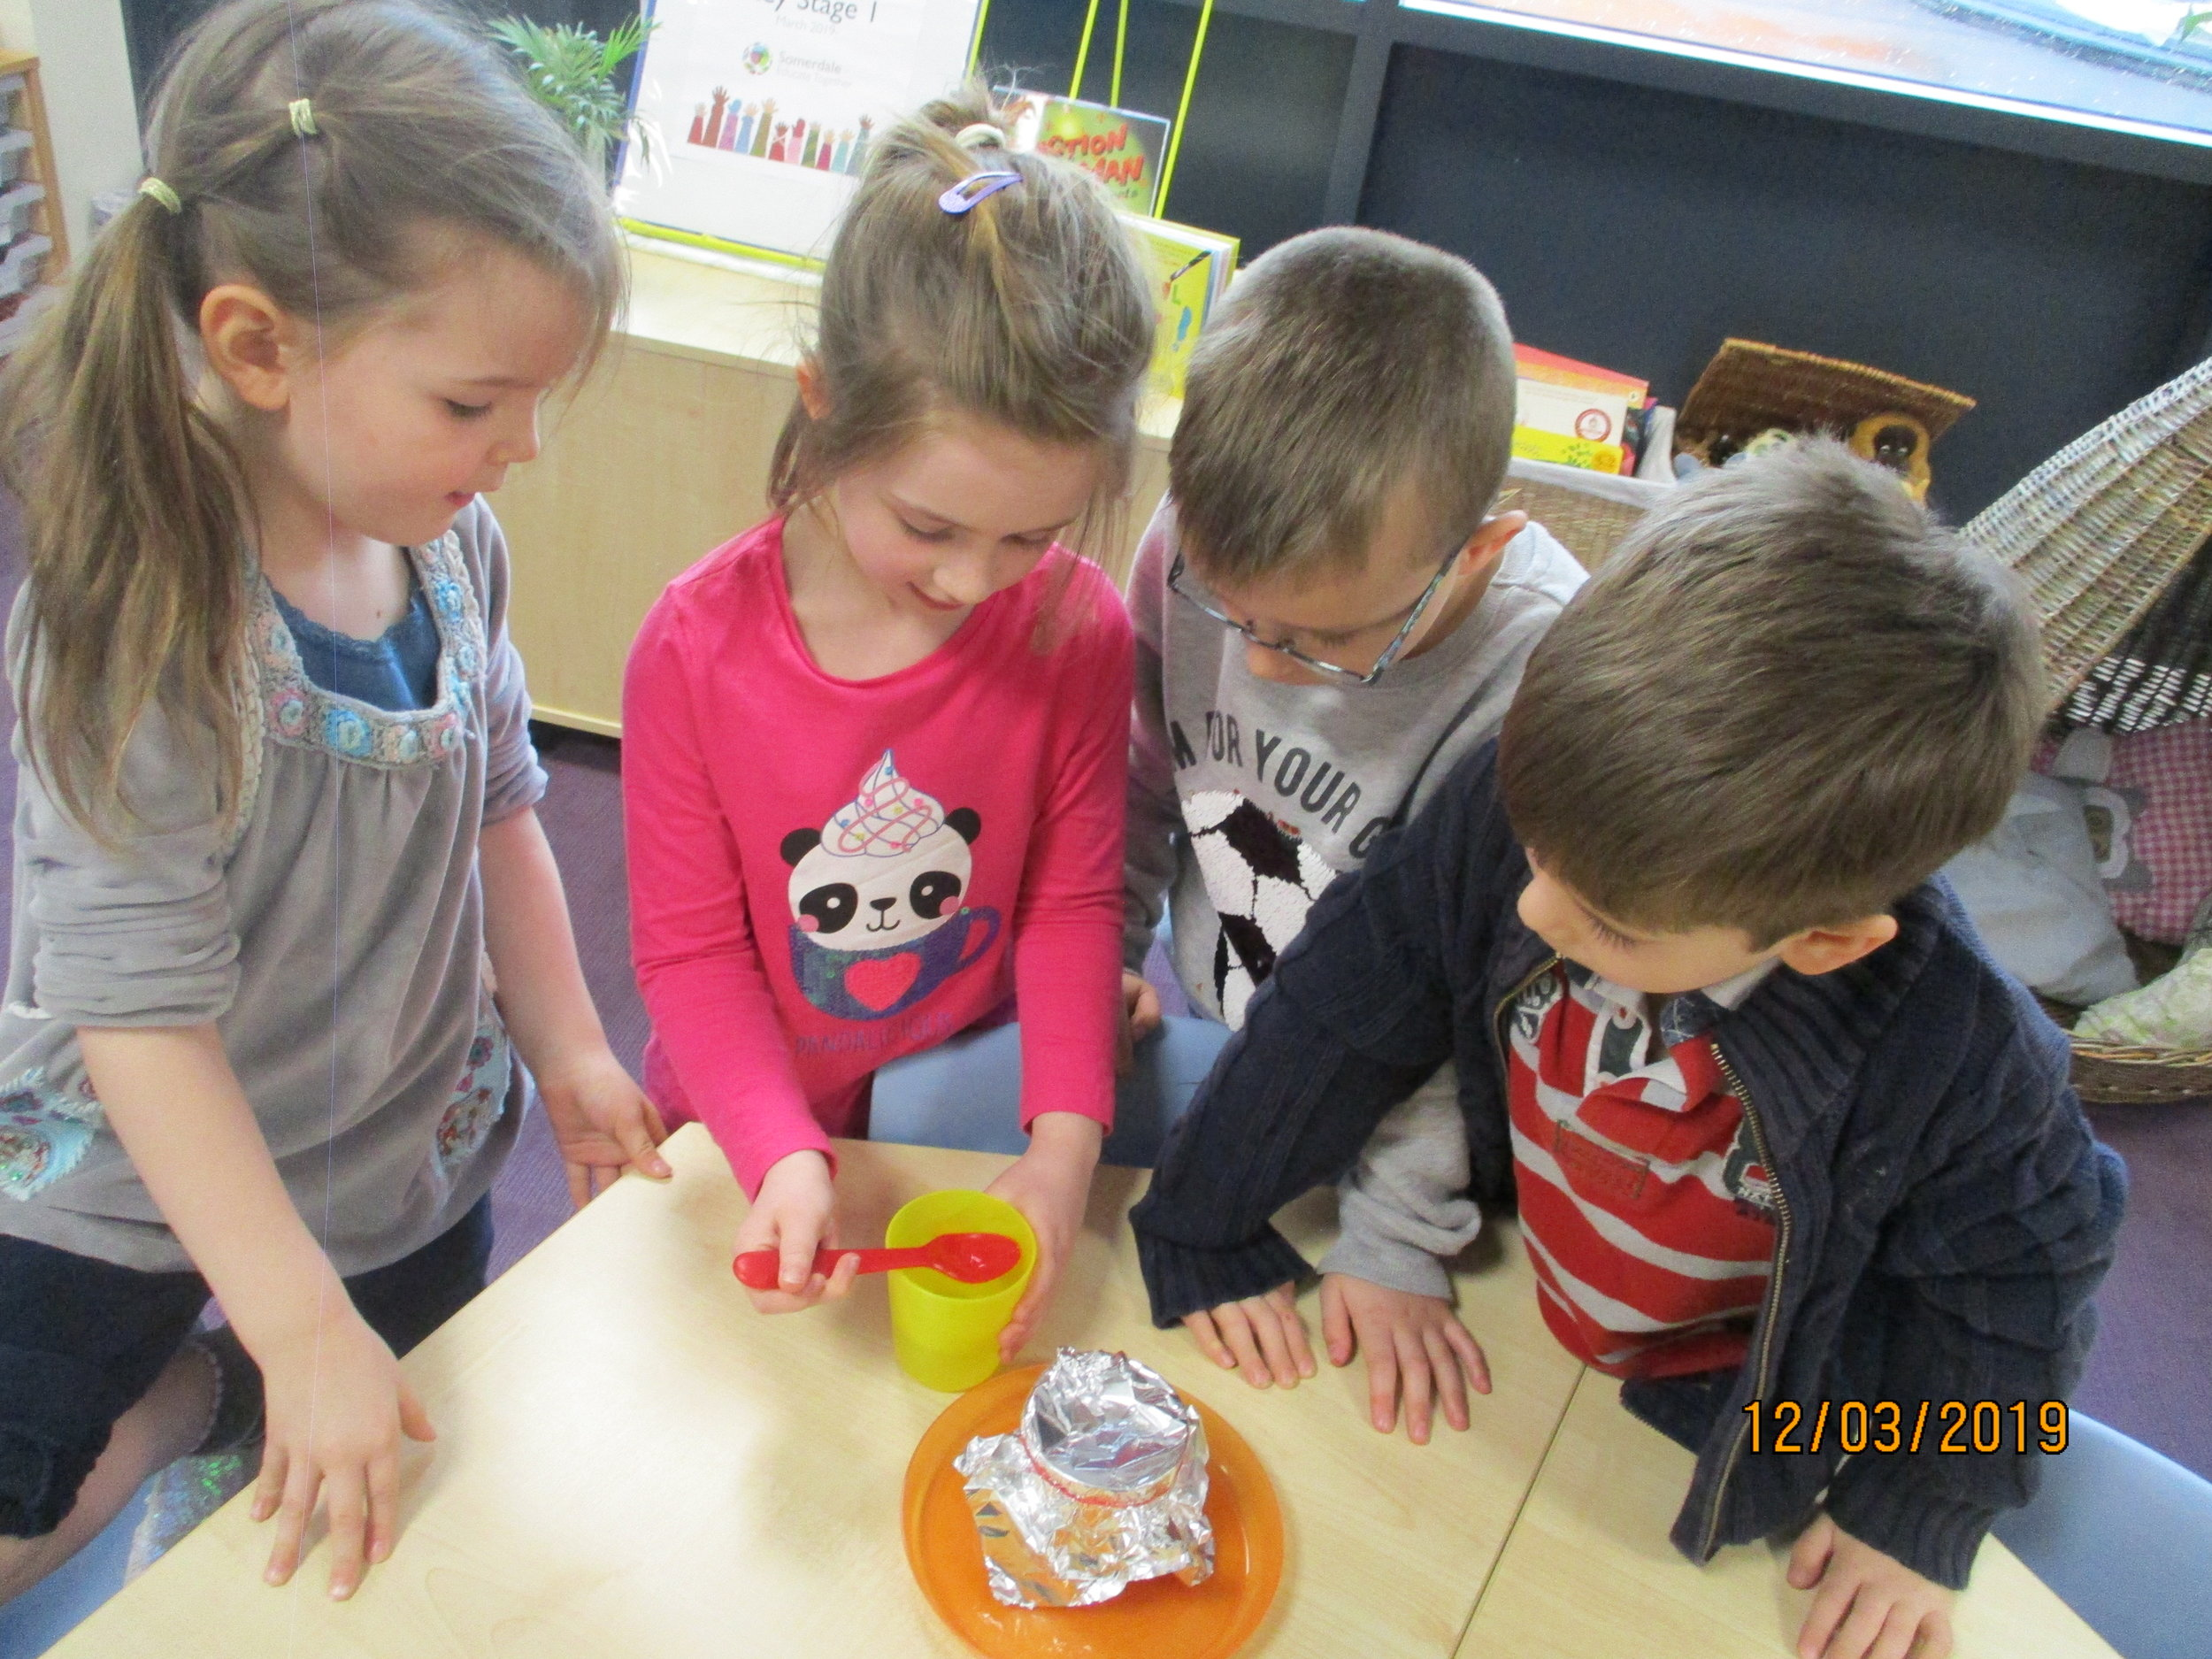 We are being scientists and using experiments to answer scientific questions like 'what material is most suitable for a new diving suit for Traction Man and why?'